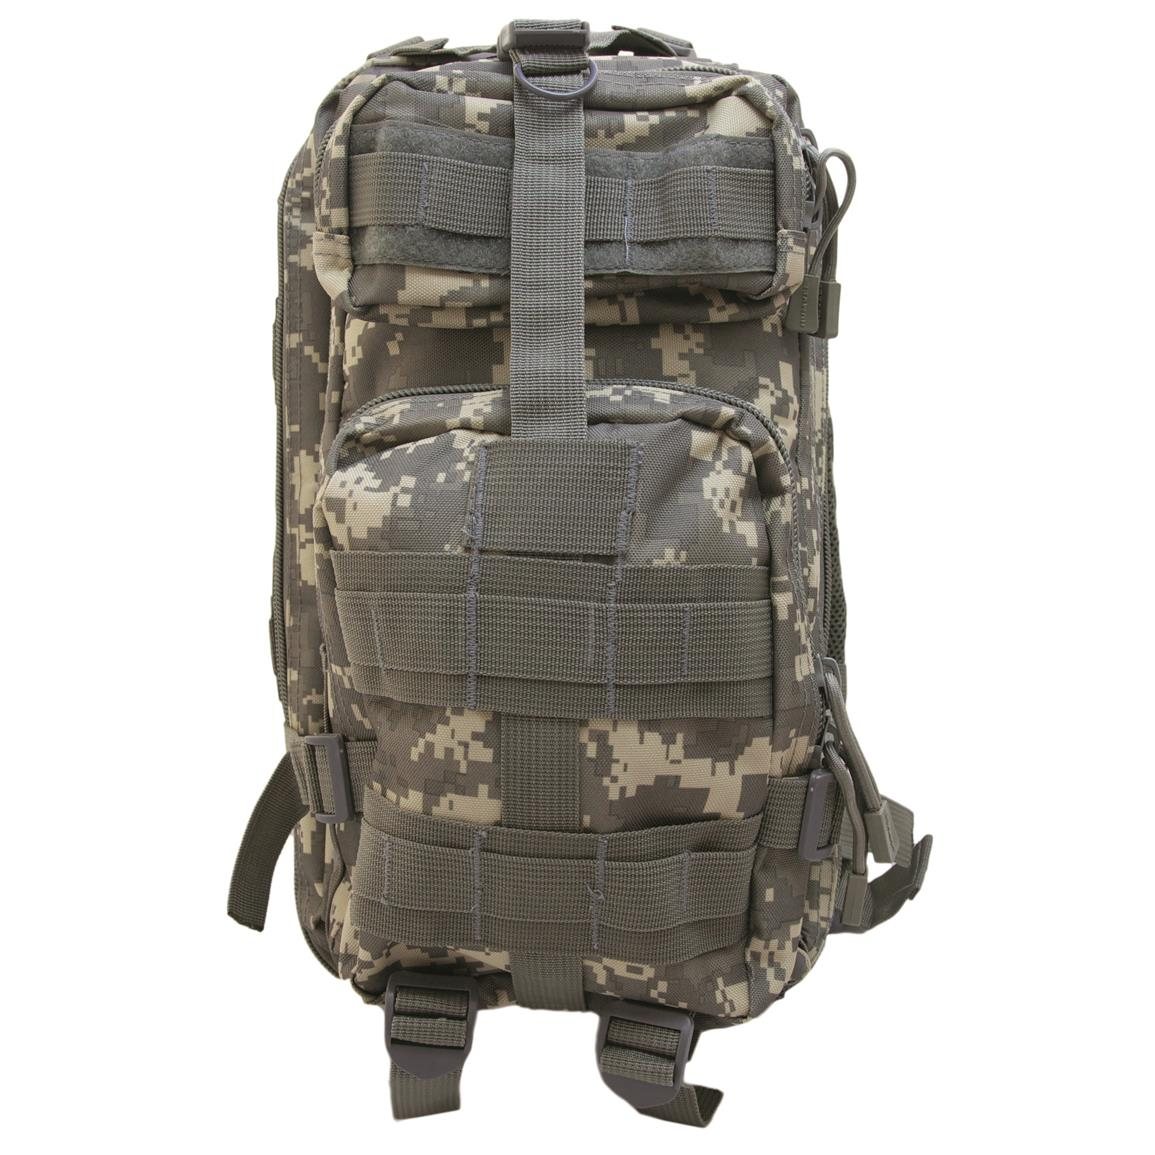 Humvee Transport Gear Bag, Digital Camo, Front